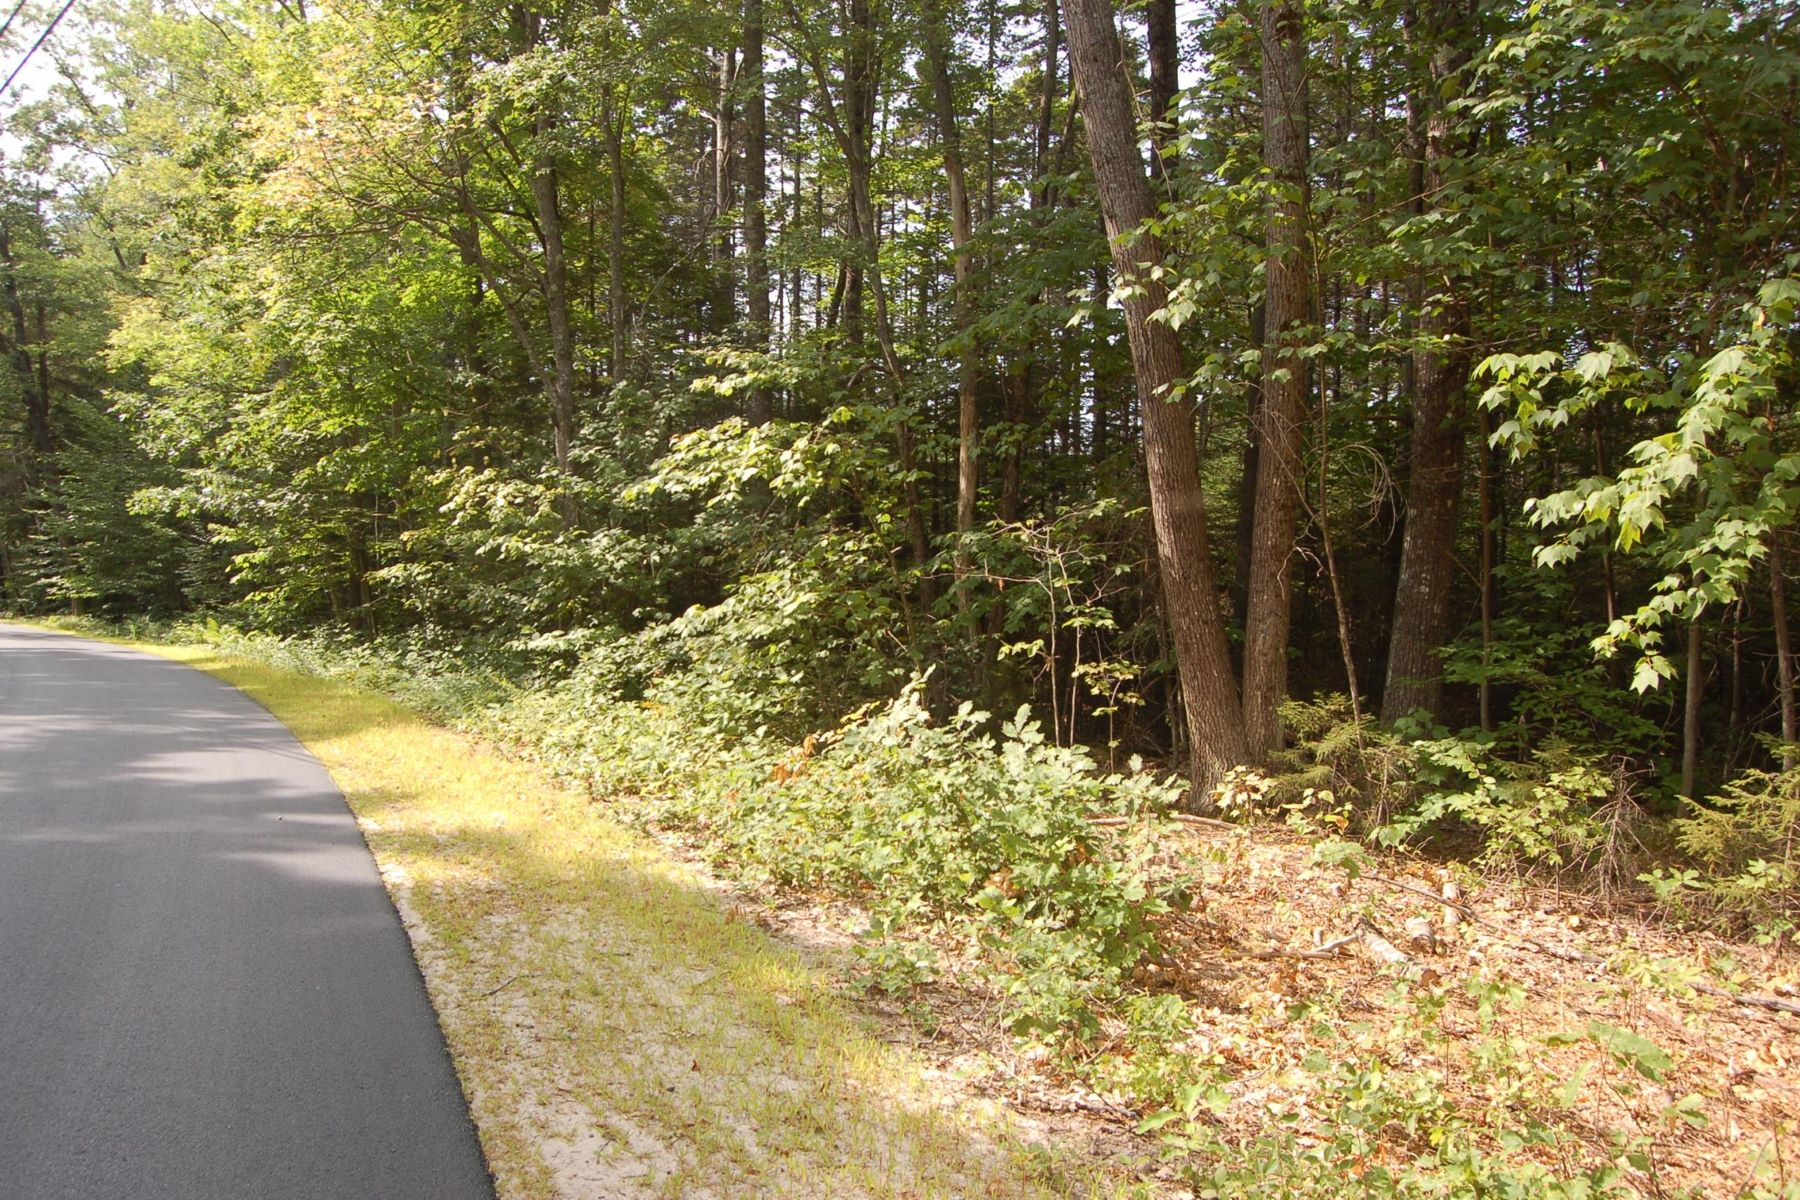 Land for Sale at Level Building Lot 00 Chalk Pond, Newbury, New Hampshire, 03255 United States